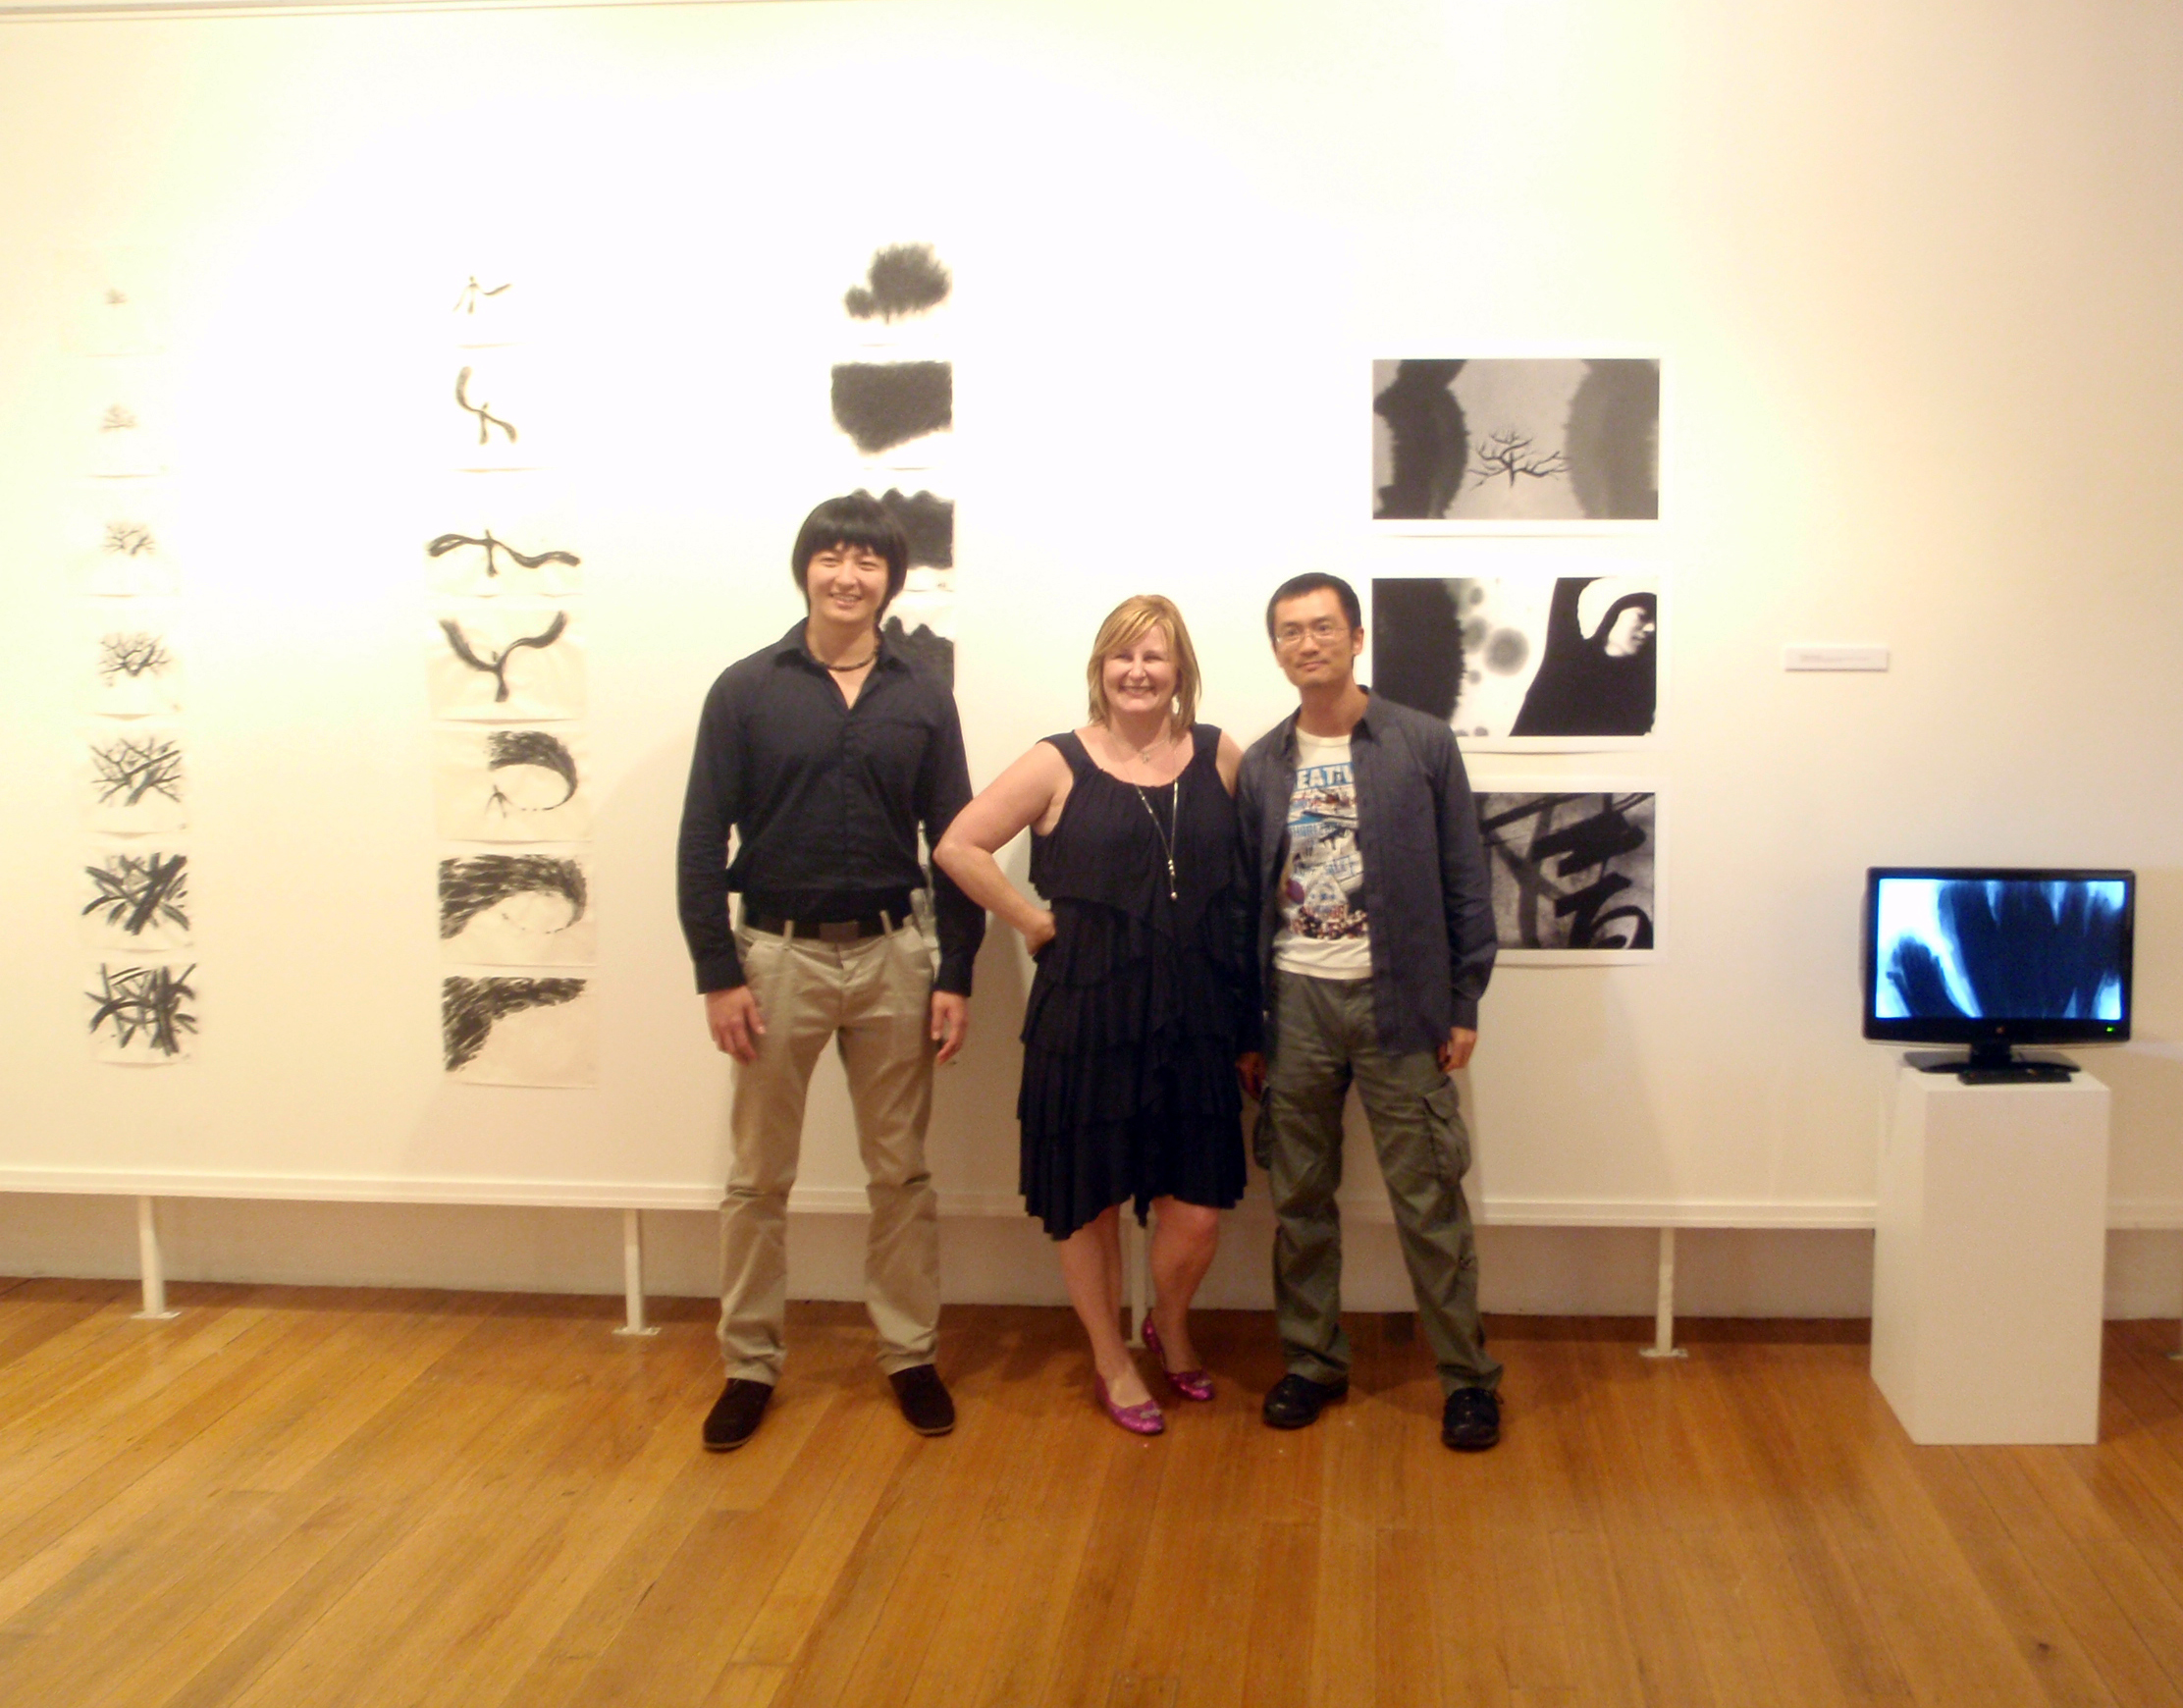 Xin Li, Andi Spark and Zhi-ming Su in front of Jimmy's work